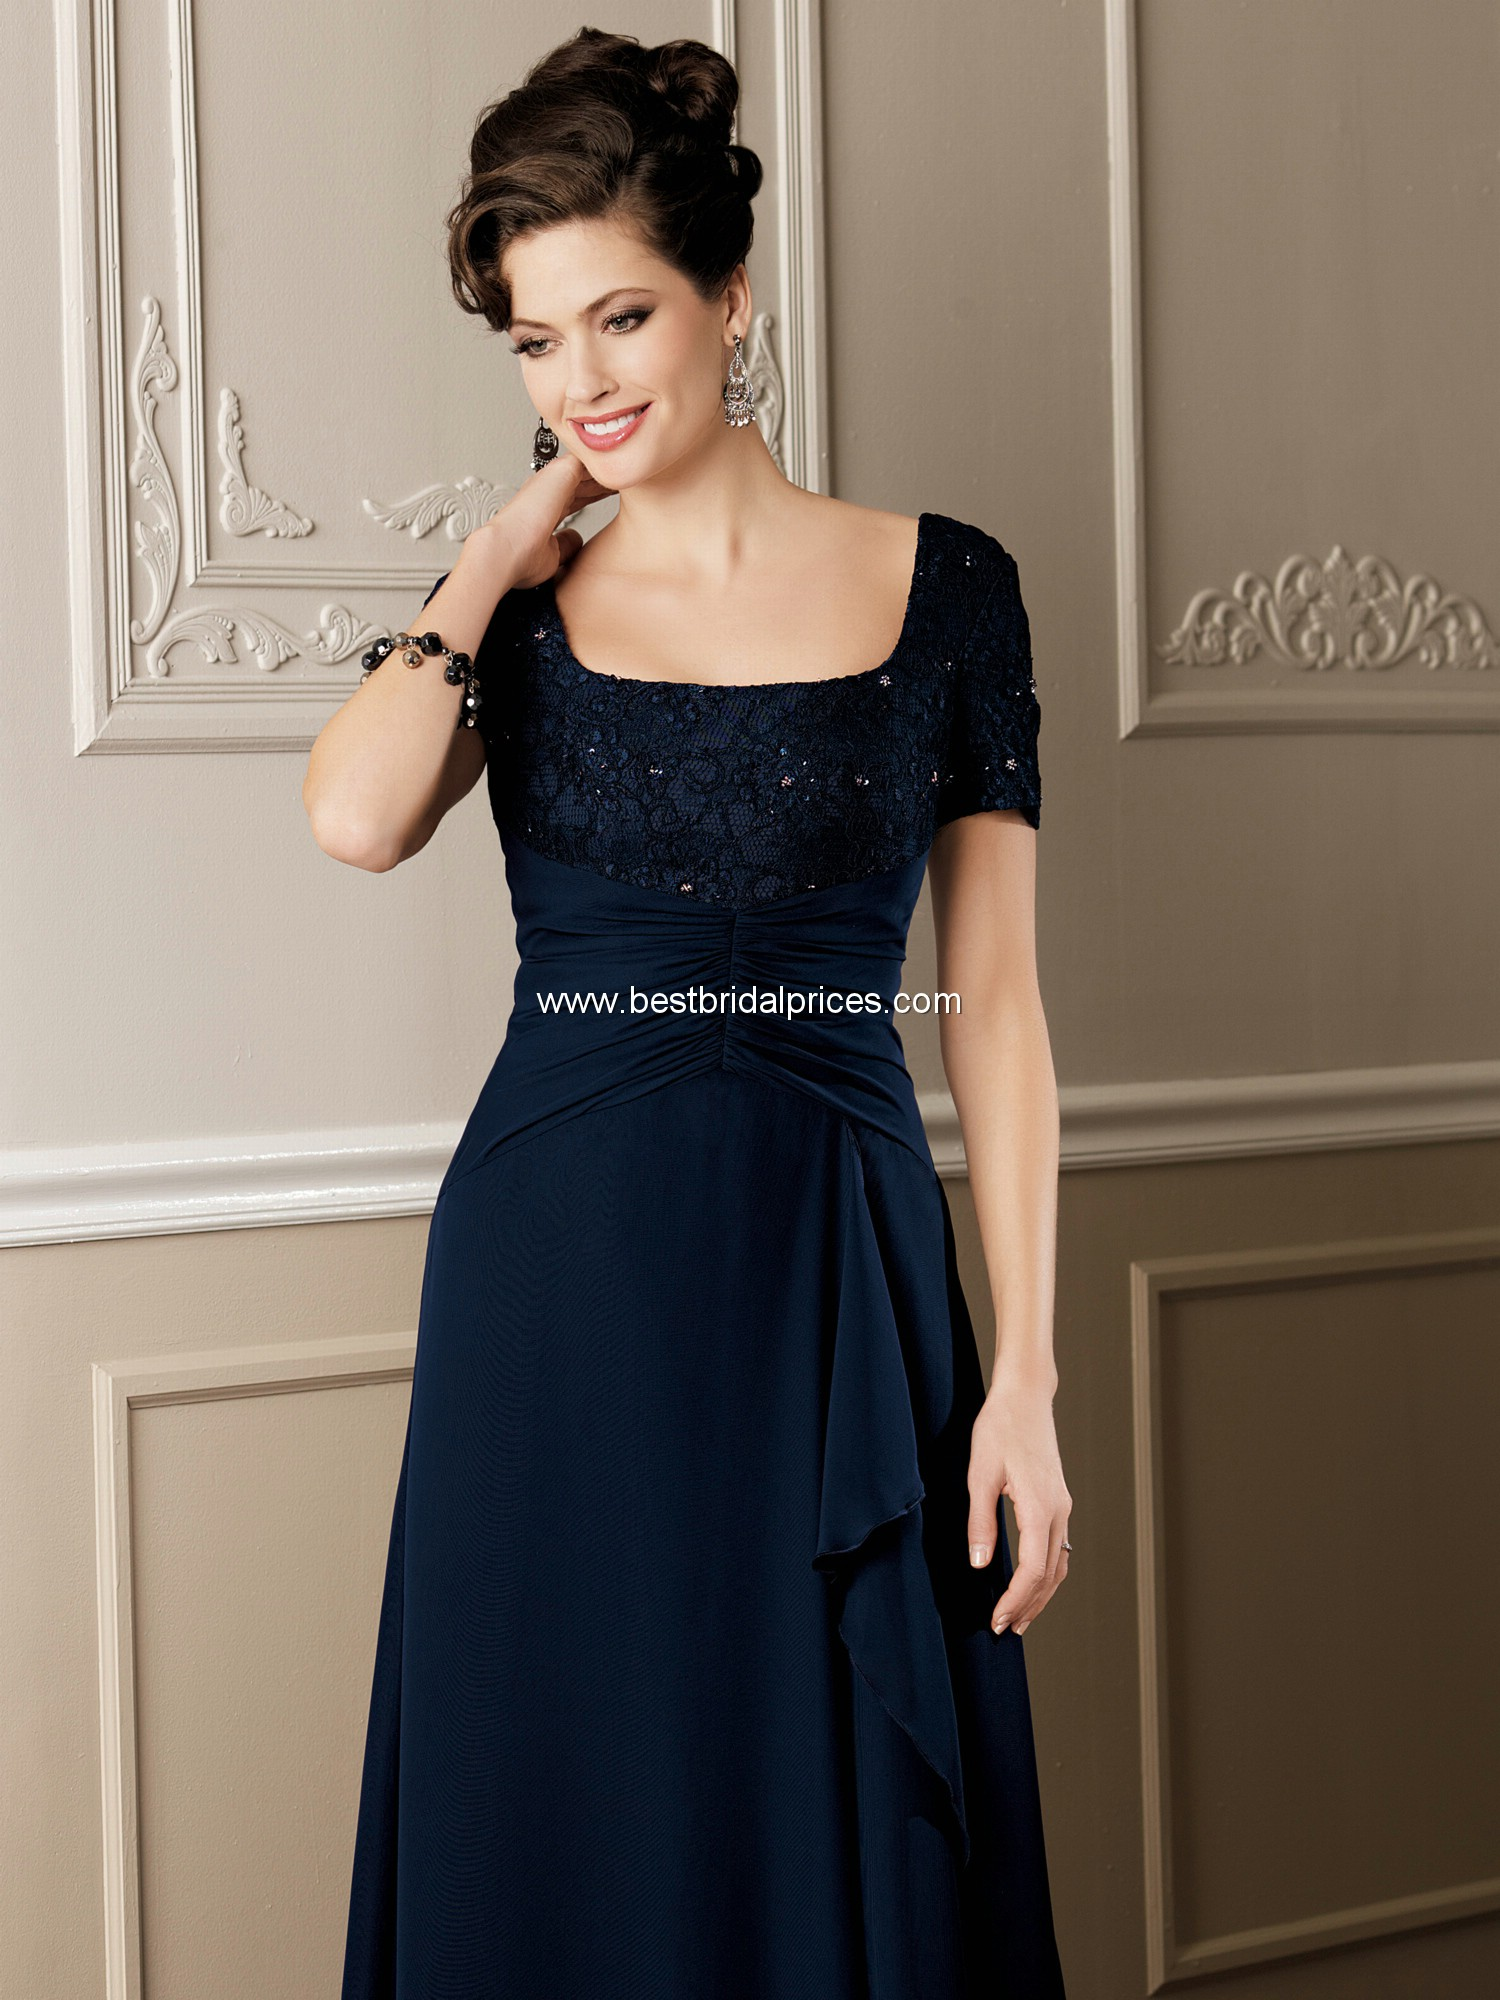 Mother Of The Bride Dress Ordered: Check